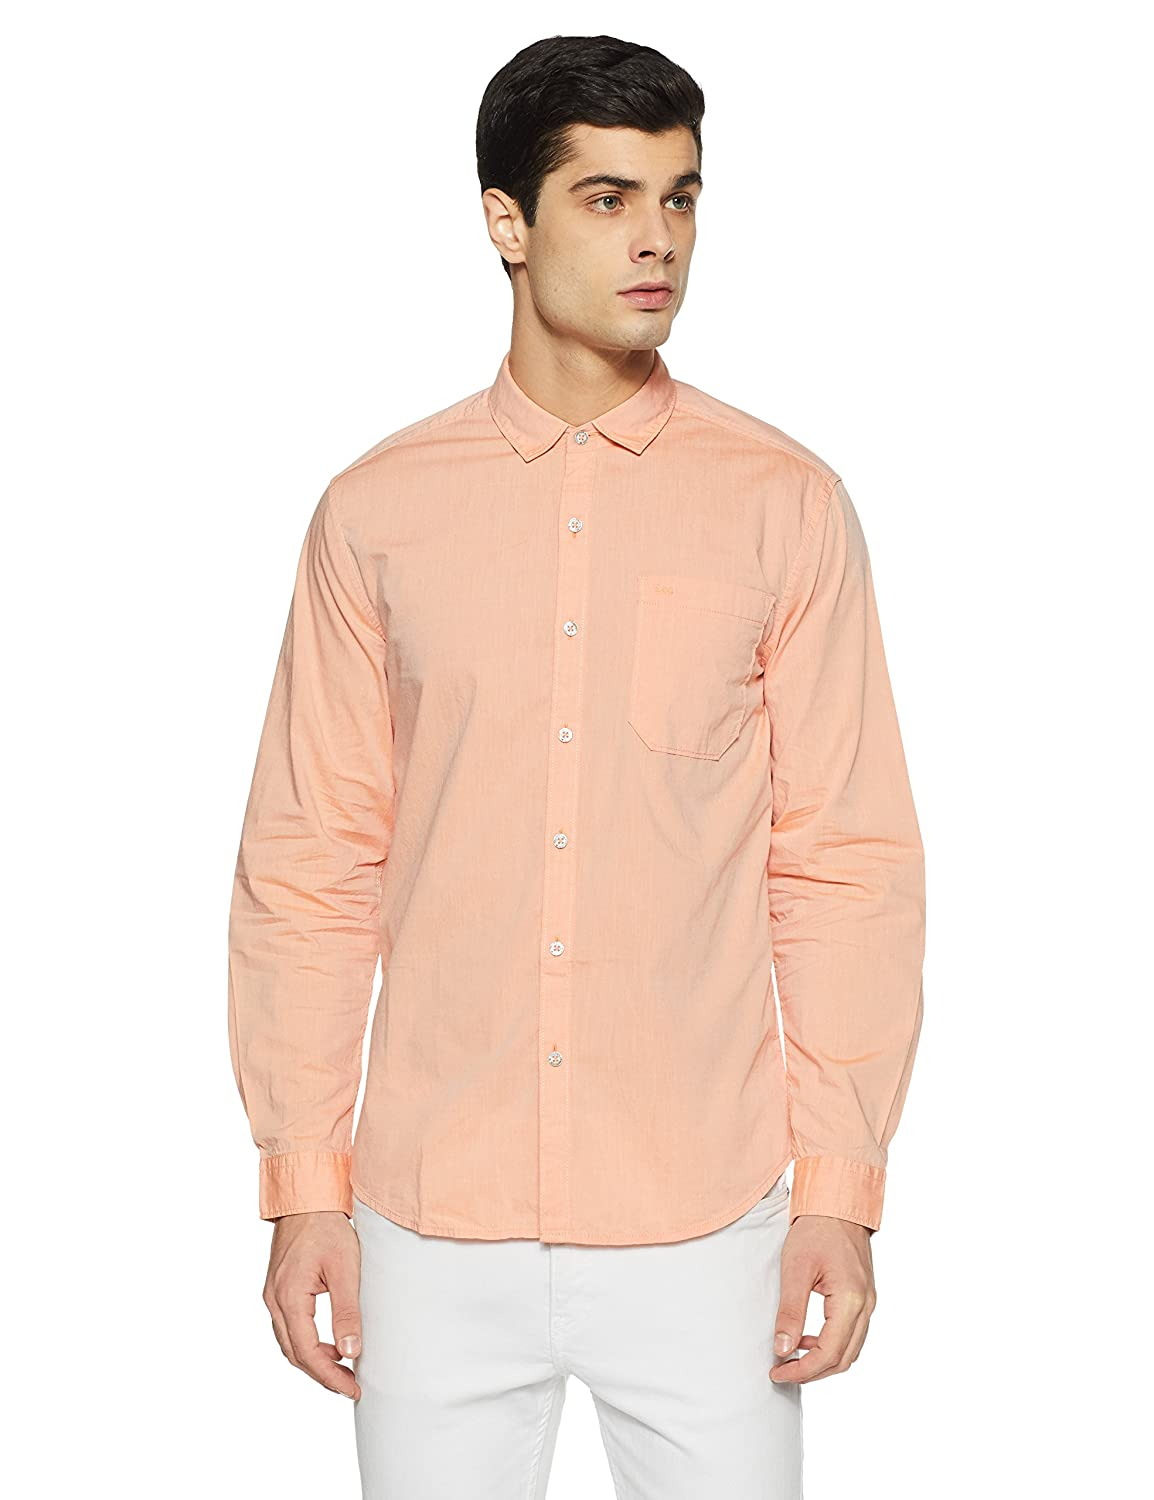 Lee Men's Solid Slim Fit Casual Shirt – Size XL